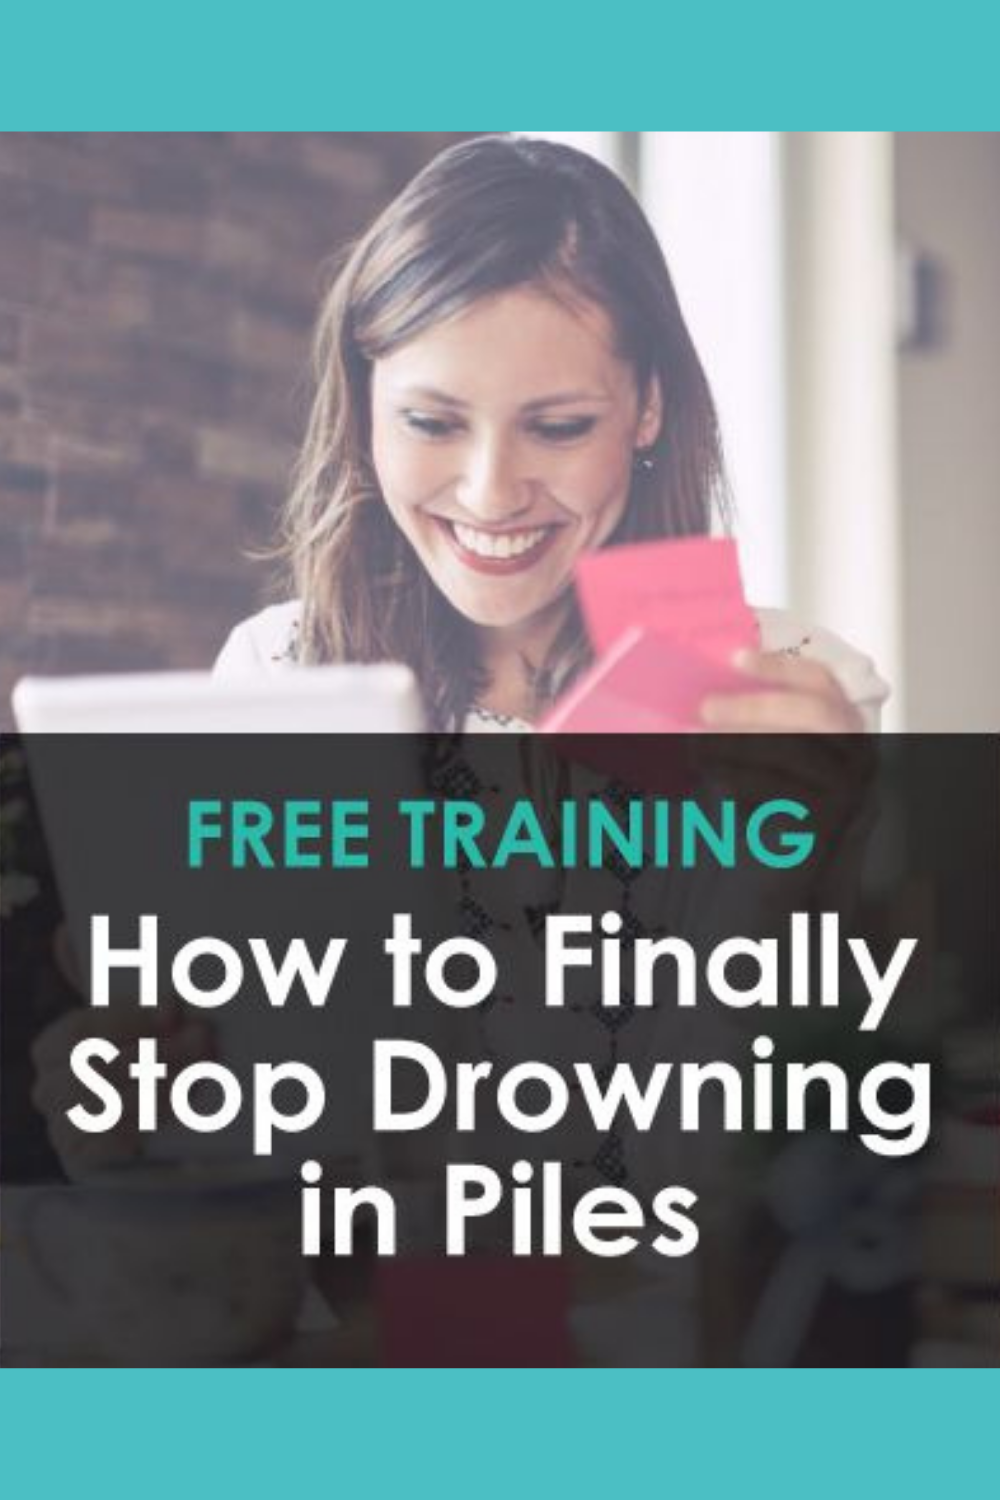 How To Finally Stop Drowning In Piles